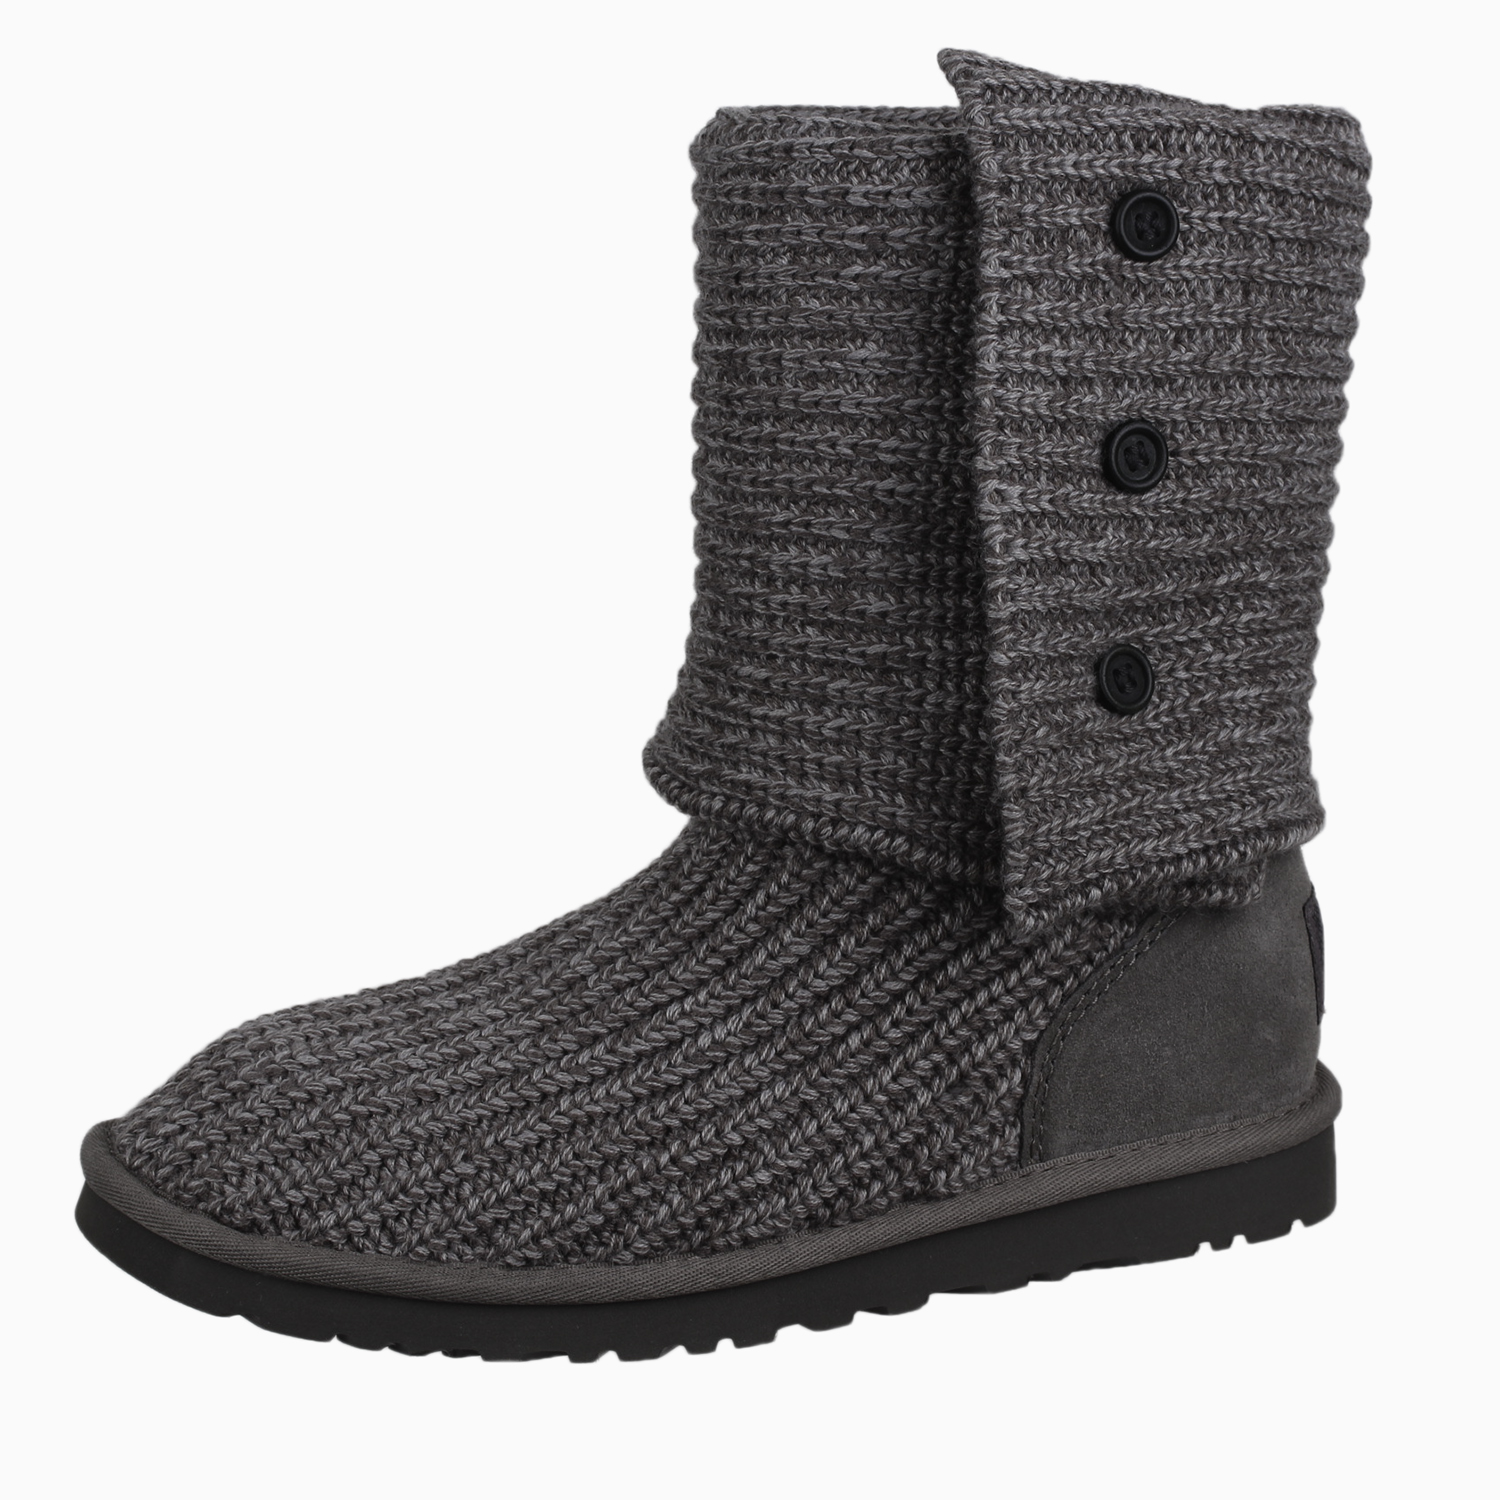 9aecc49b9c5 Details about UGG Australia Women's Classic Cardy Knit Sheepskin 5819W Boot  Shoes Grey